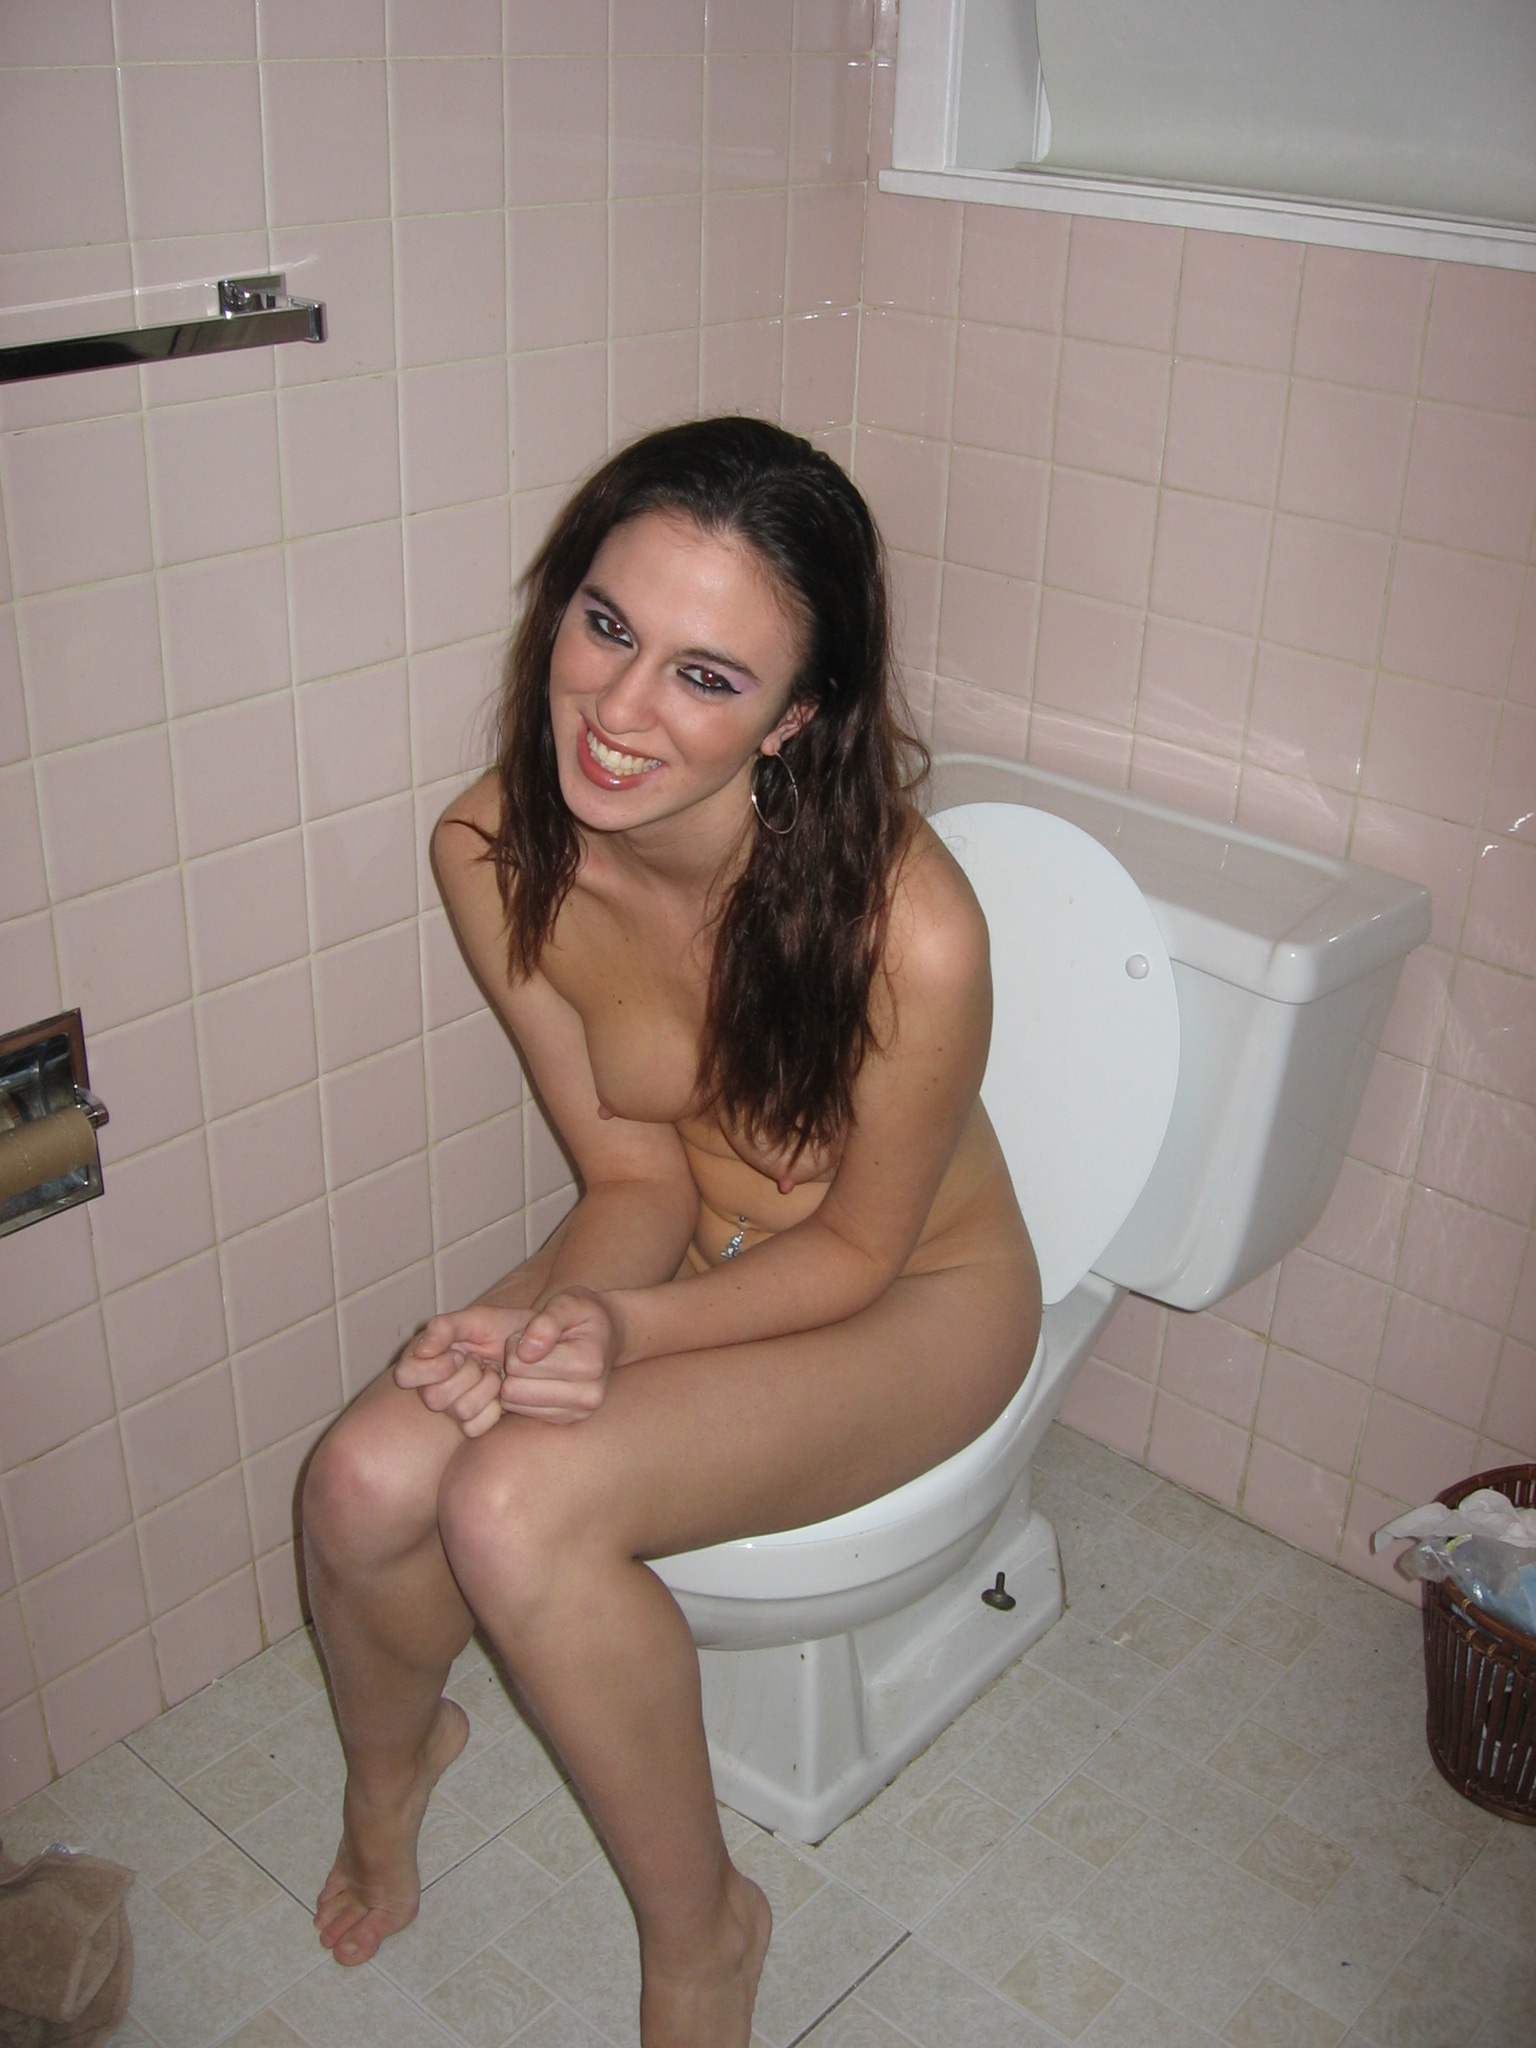 Ordinary women pissing hentay images